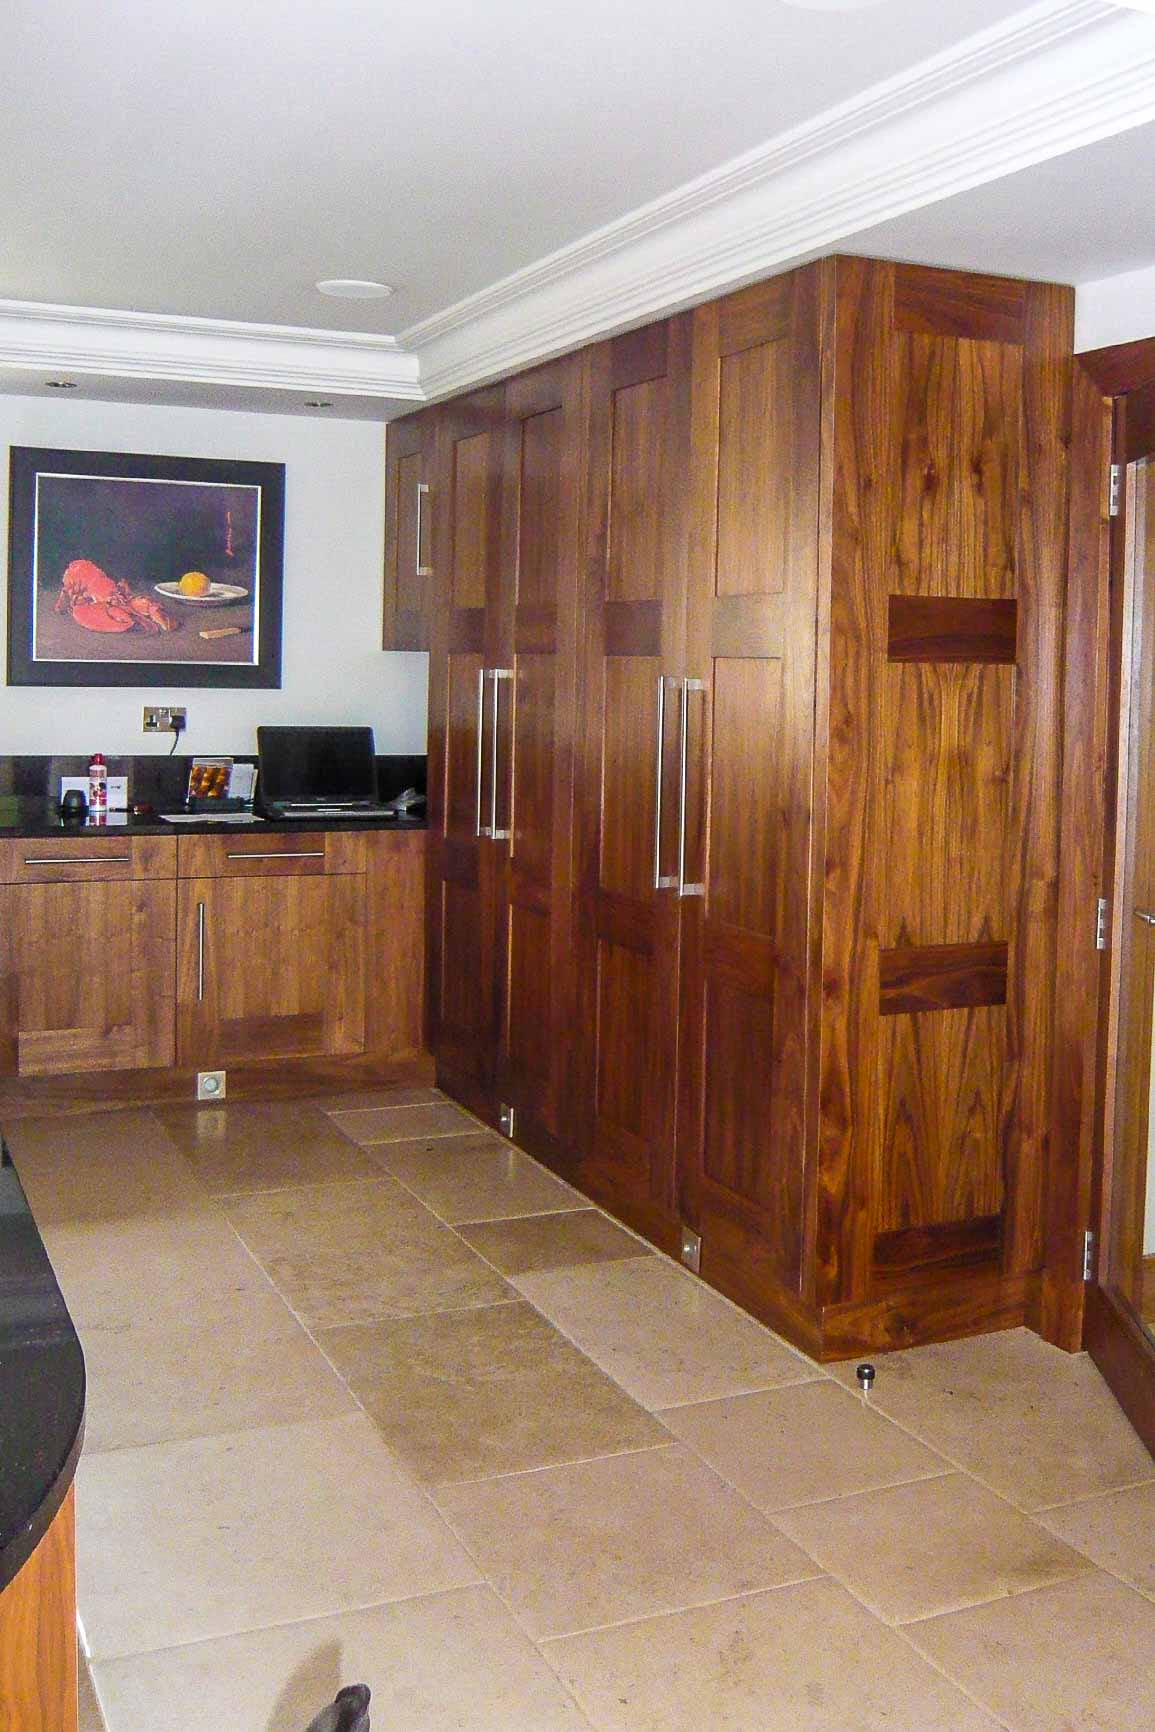 Jack Hyams | Kitchens Cabinets Designs & Manufacture